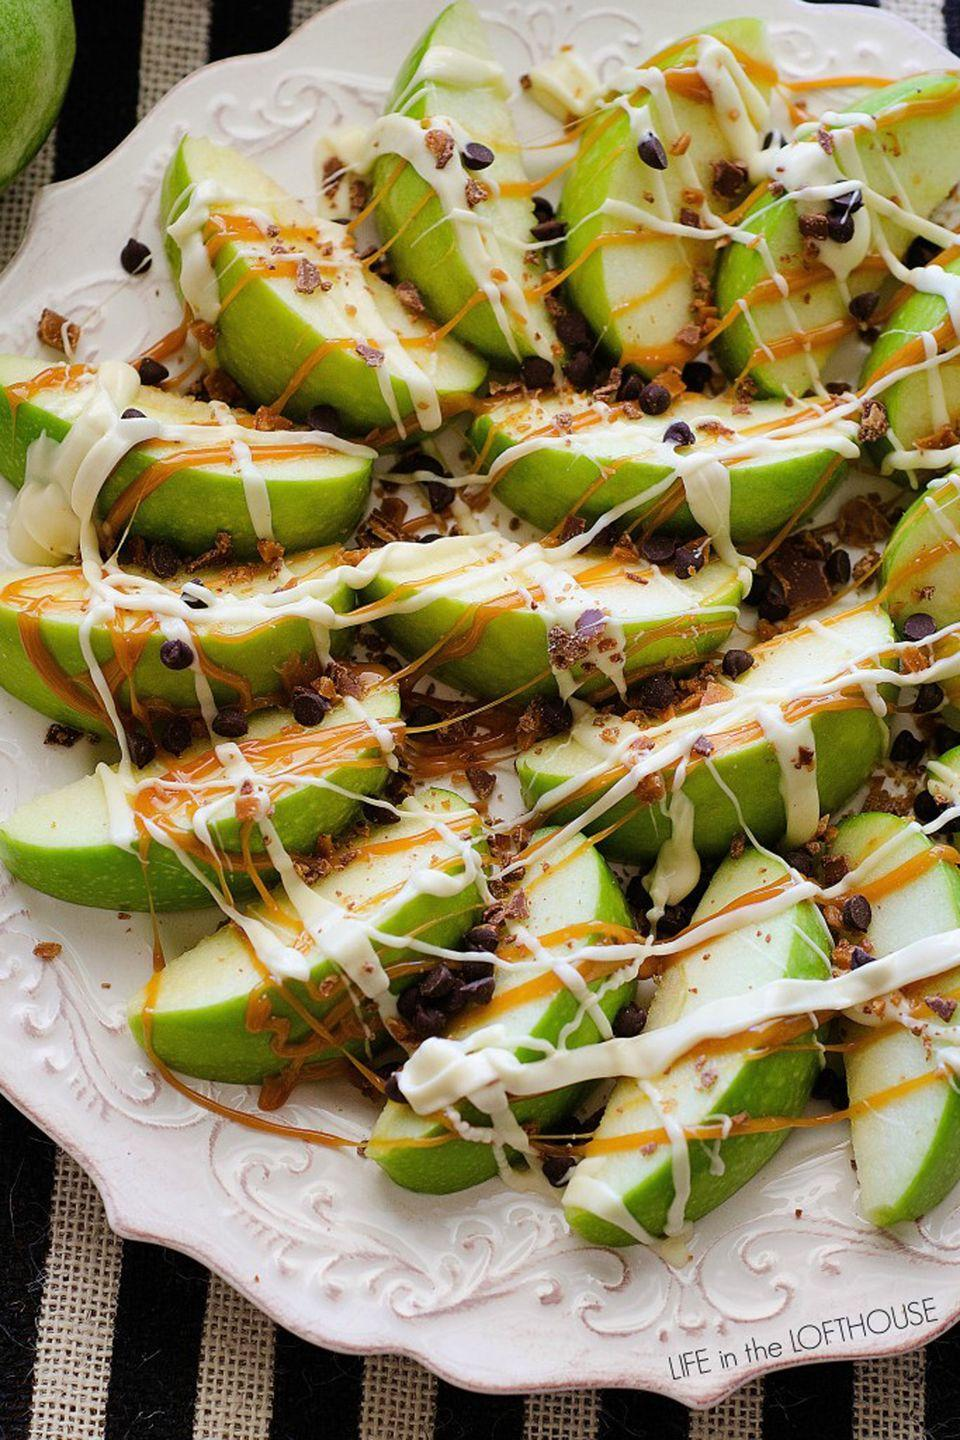 """<p>This sweet spin turns your favorite game day snack into a delightful dessert.</p><p><strong>Get the recipe at <a href=""""https://life-in-the-lofthouse.com/caramel-apple-nachos/"""" rel=""""nofollow noopener"""" target=""""_blank"""" data-ylk=""""slk:Life In the Lofthouse"""" class=""""link rapid-noclick-resp"""">Life In the Lofthouse</a>.</strong></p>"""